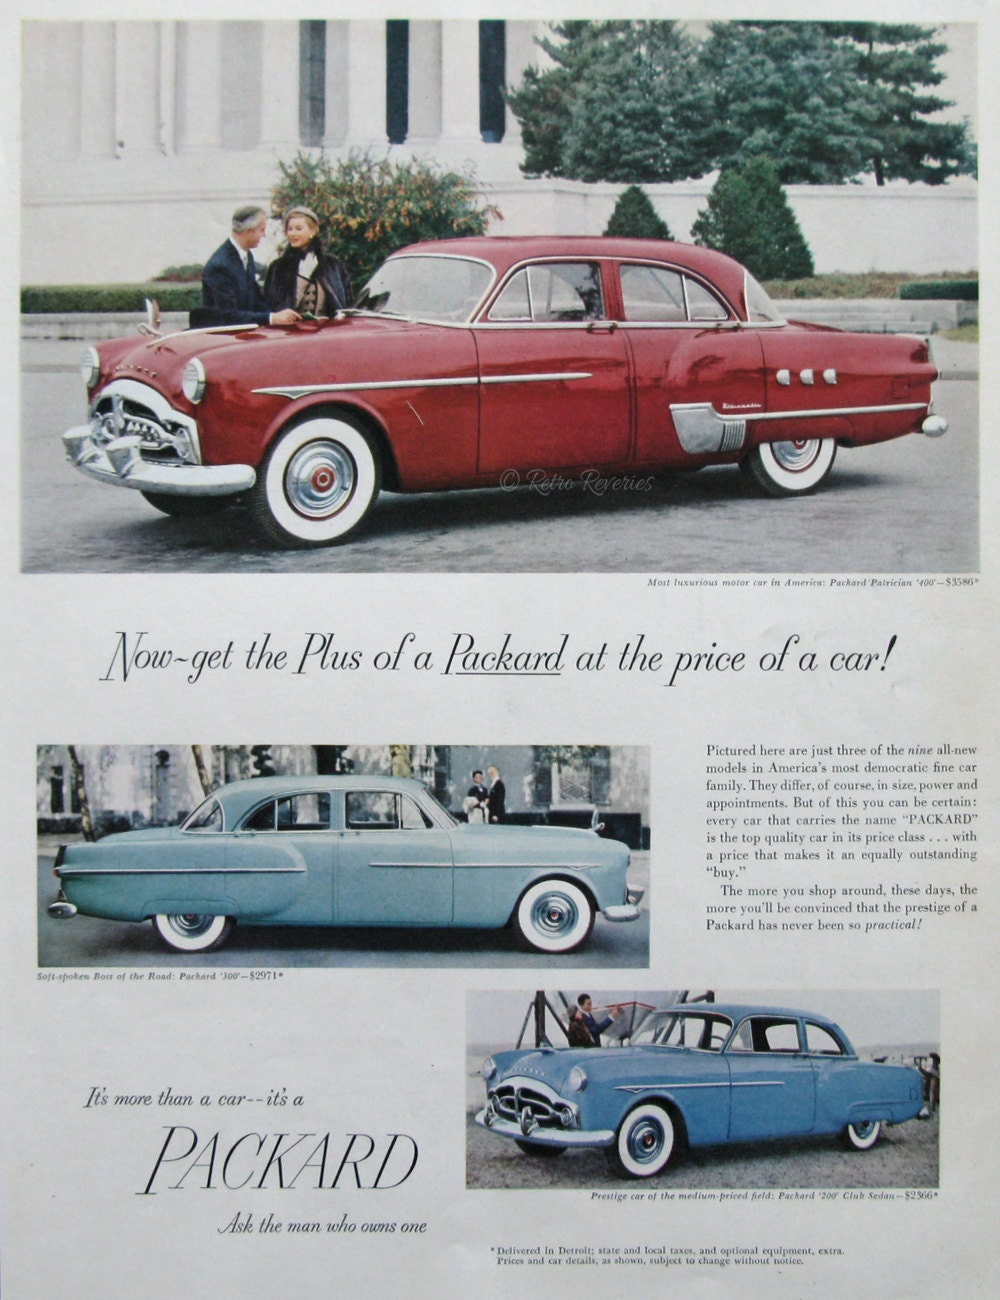 1951 Packard Patrician Ad 1950s Classic Car Advertising